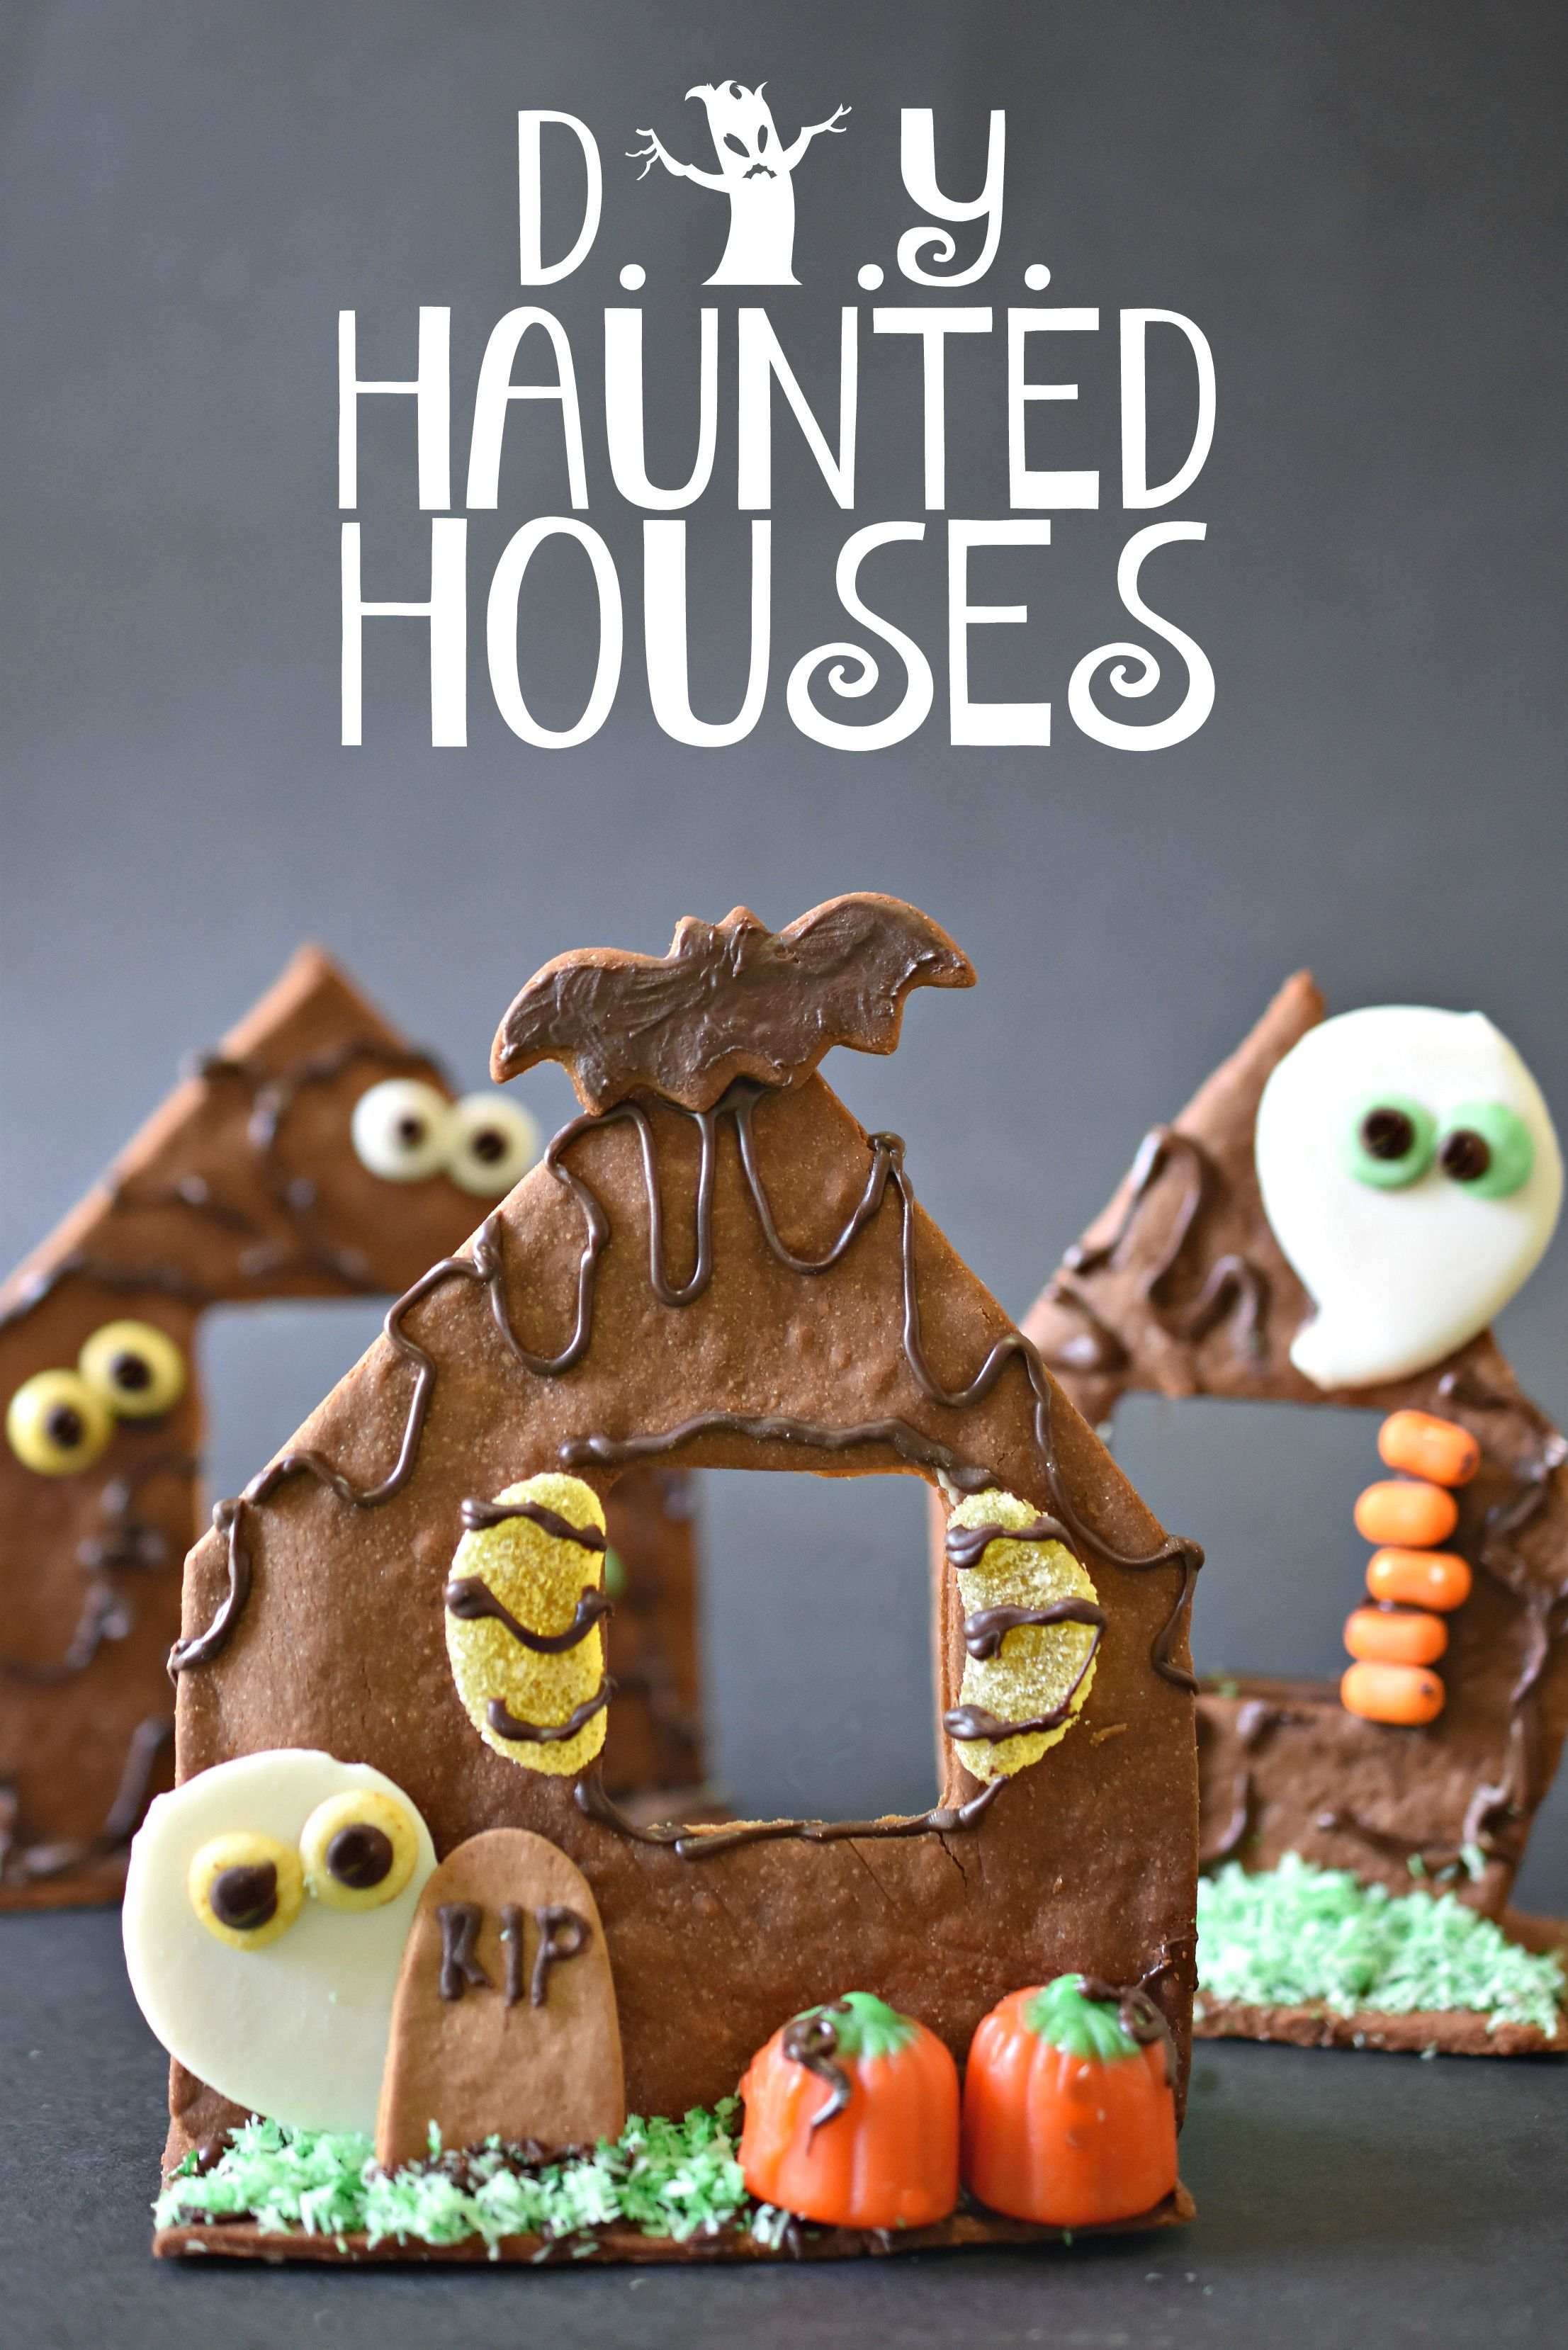 DIY Haunted Houses Recipe Halloween gingerbread house